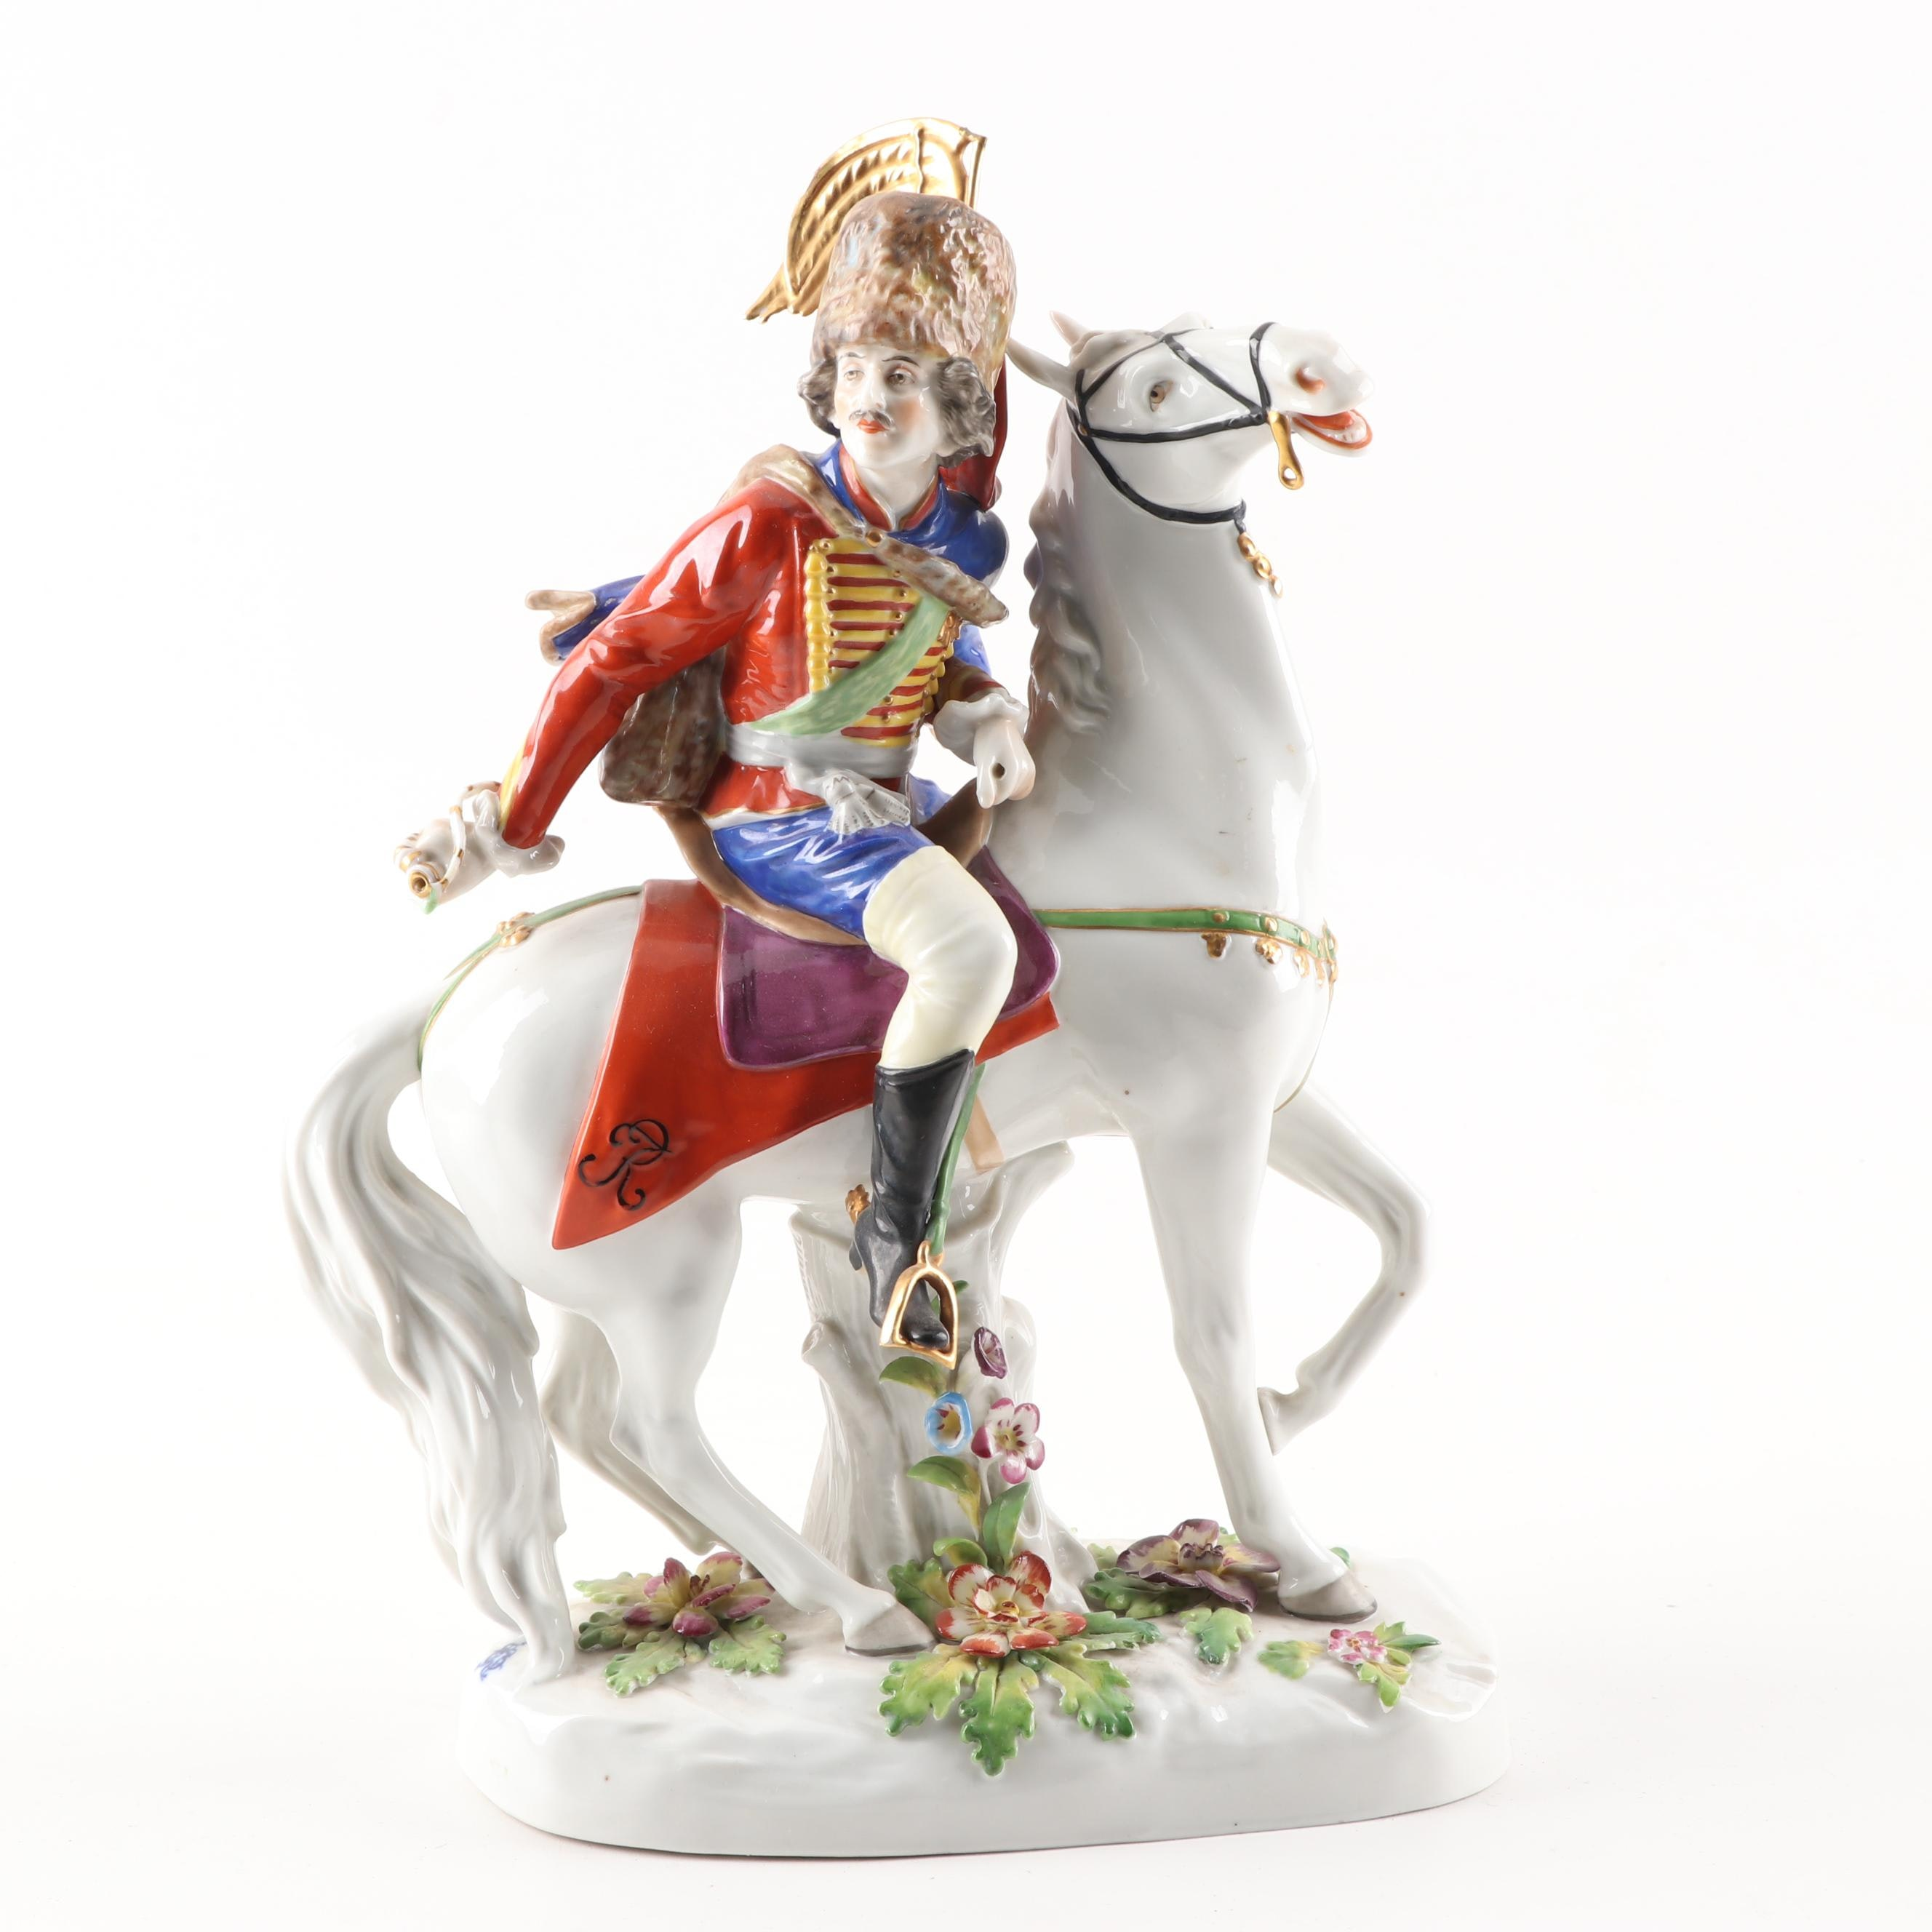 German Porcelain Military Figurine Attributed to Volkstedt, Hussar, Early 20th C